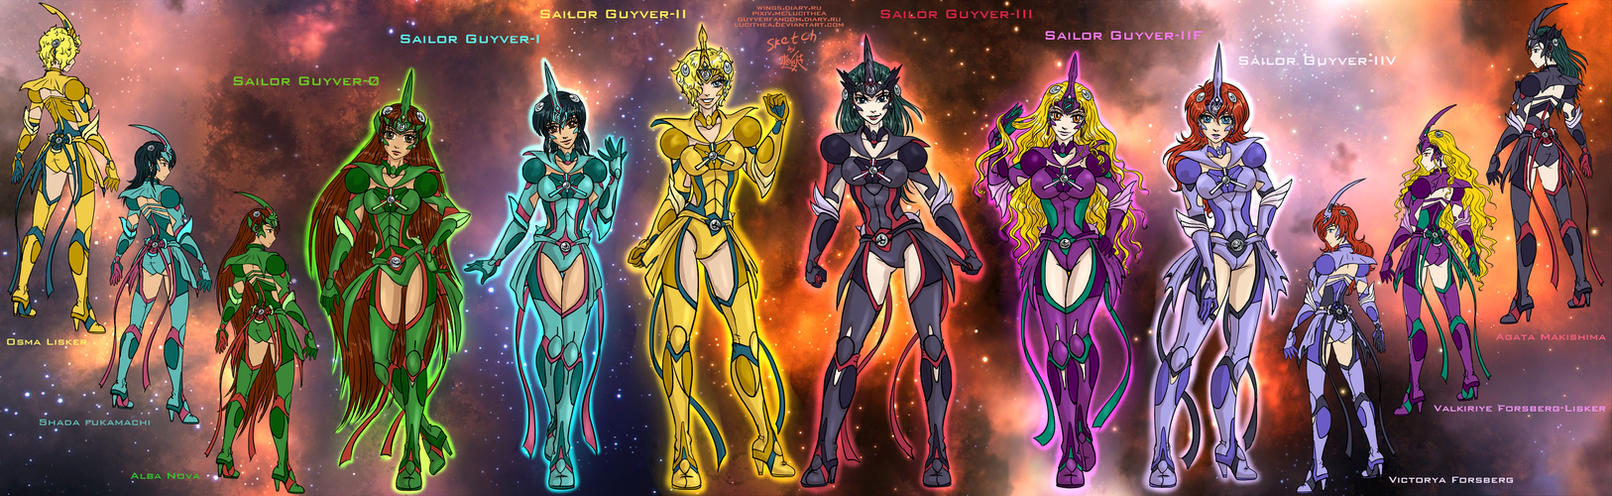 Sailor Guyvers by Lucithea